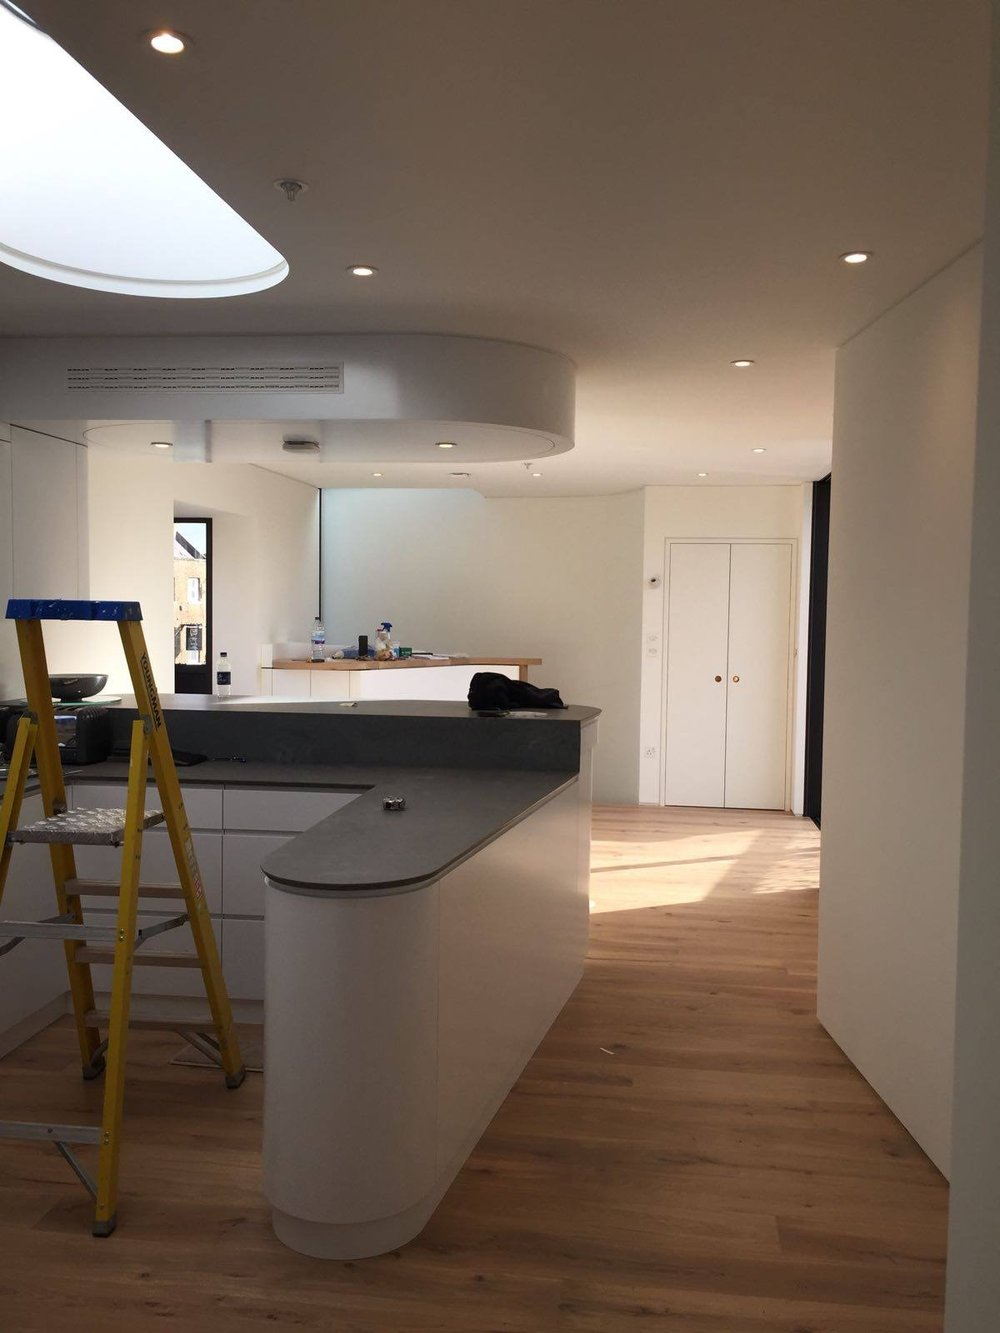 Demolition and new build | London | Kitchen construction